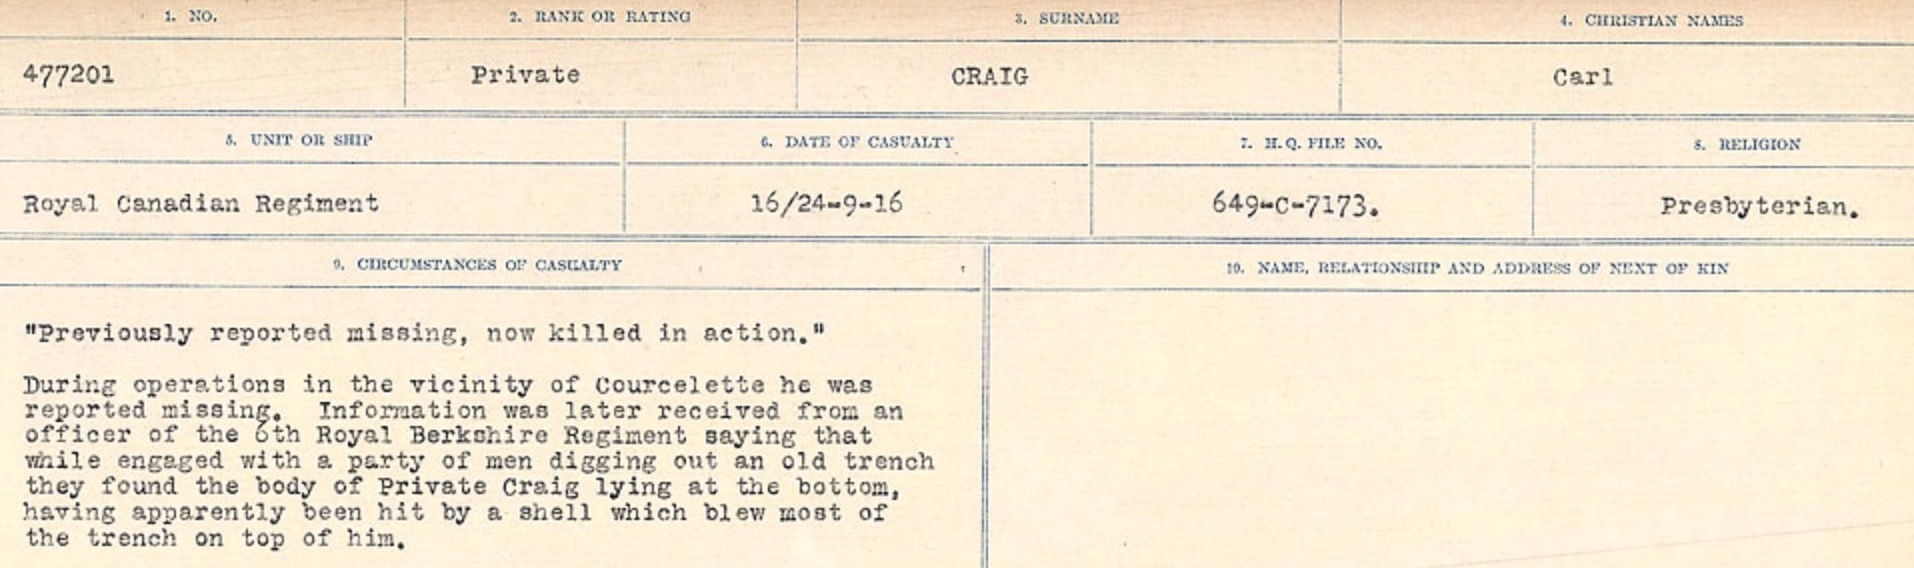 Circumstances of Death Registers– Source: Library and Archives Canada. CIRCUMSTANCES OF DEATH REGISTERS, FIRST WORLD WAR Surnames: CRABB TO CROSSLAND Microform Sequence 24; Volume Number 31829_B016733. Reference RG150, 1992-93/314, 168. Page 53  of 788.